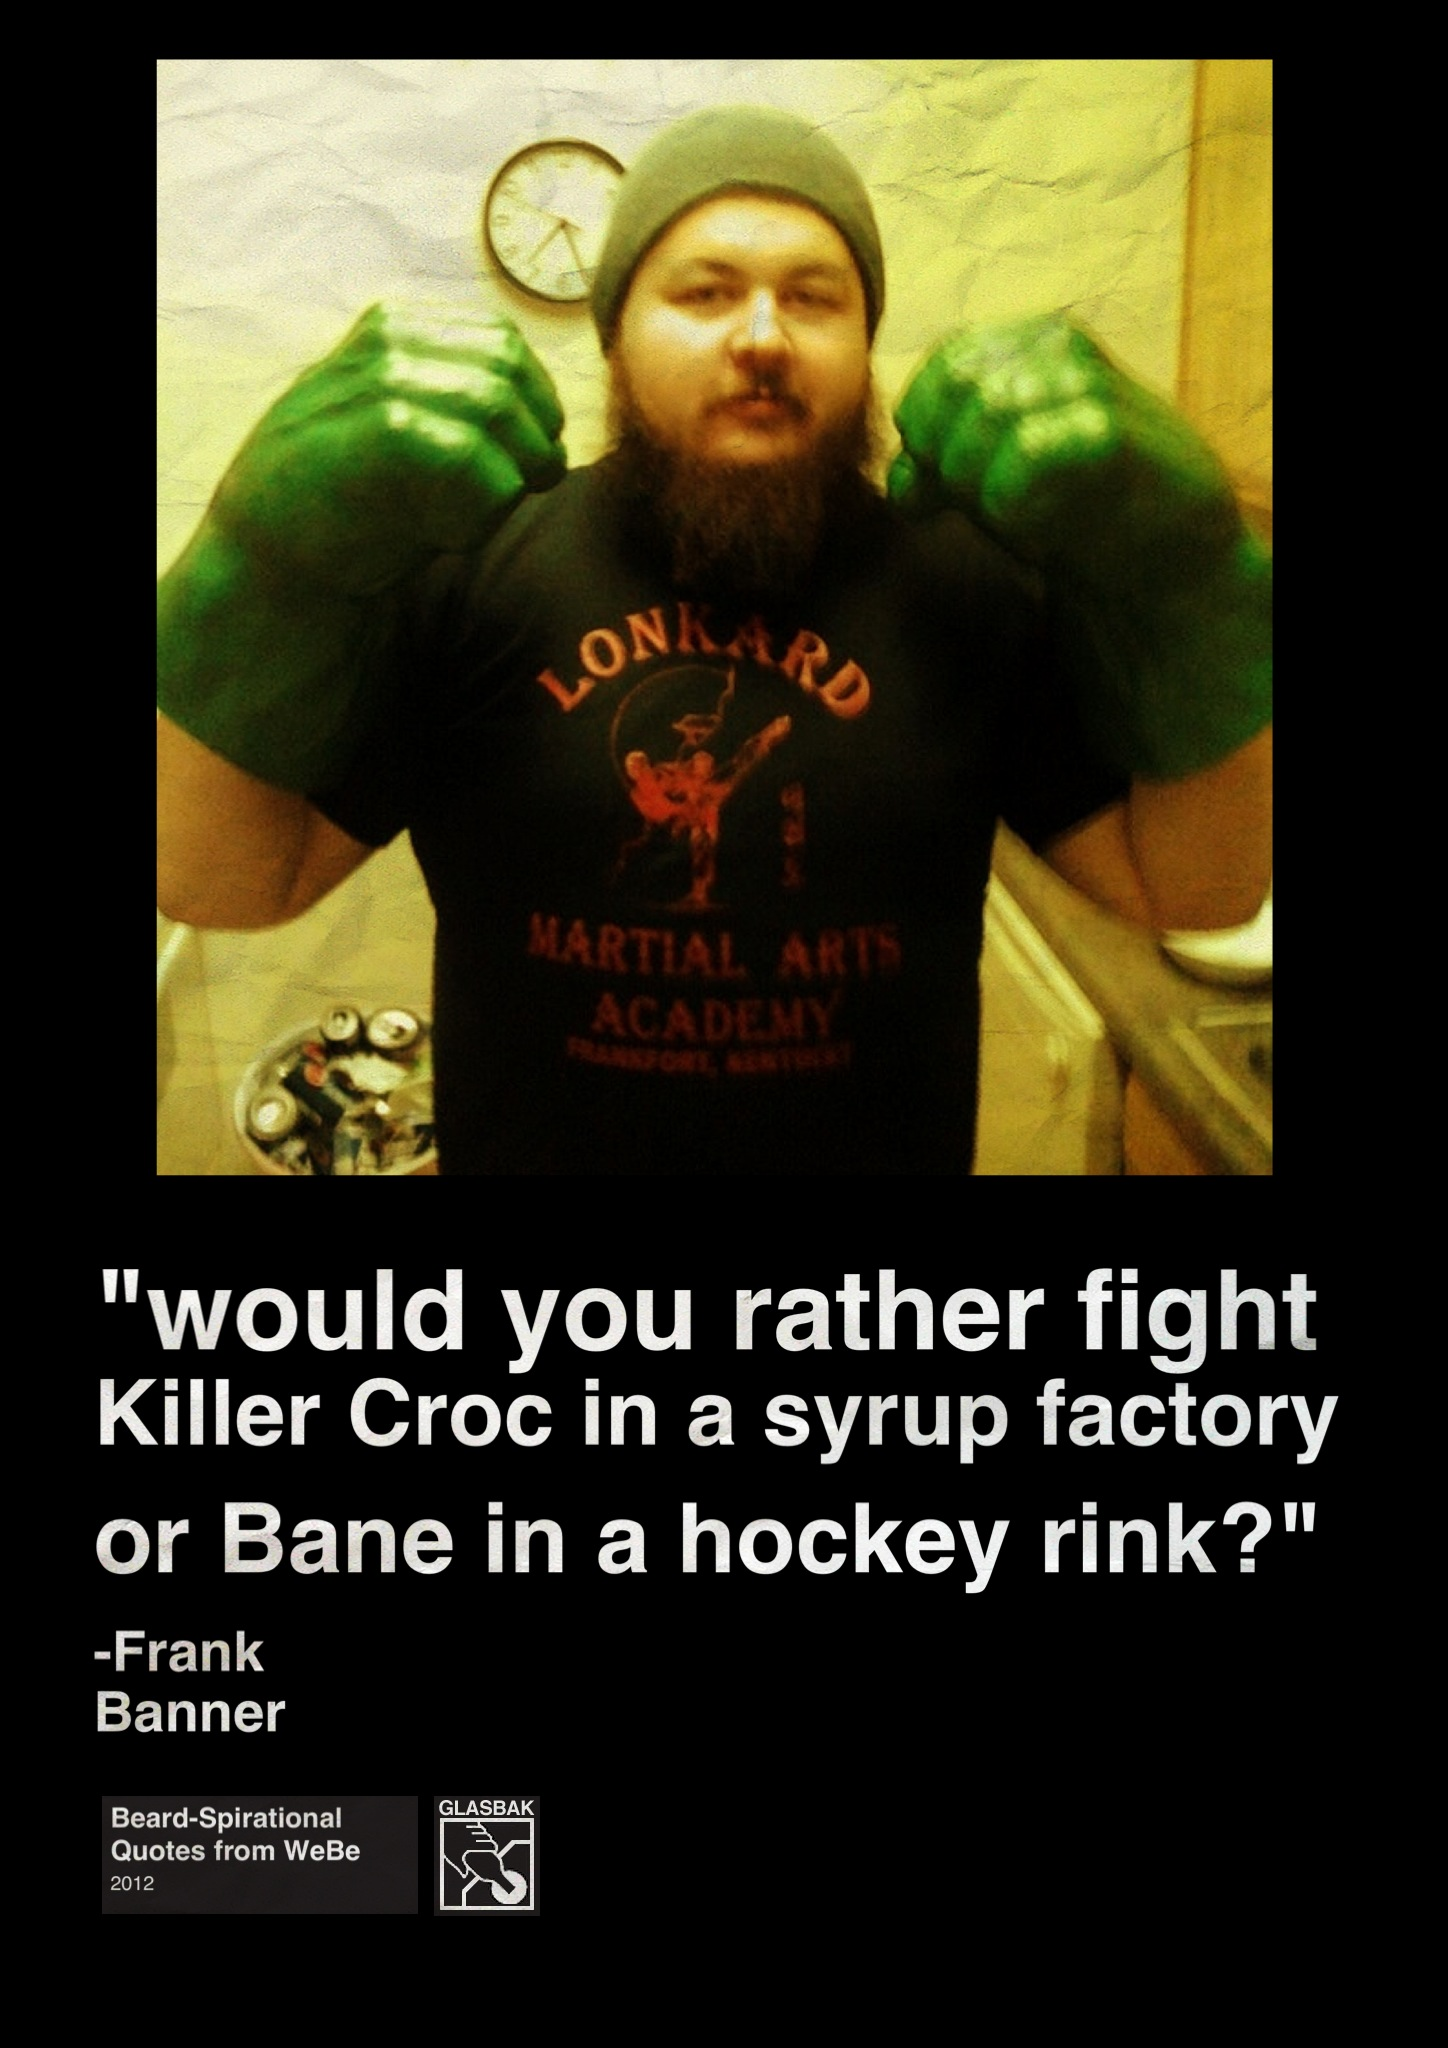 2012-12-22_Would You Rather Fight Killer Croc in a Syrup Factory or Bane in a Hockey Rink.jpg